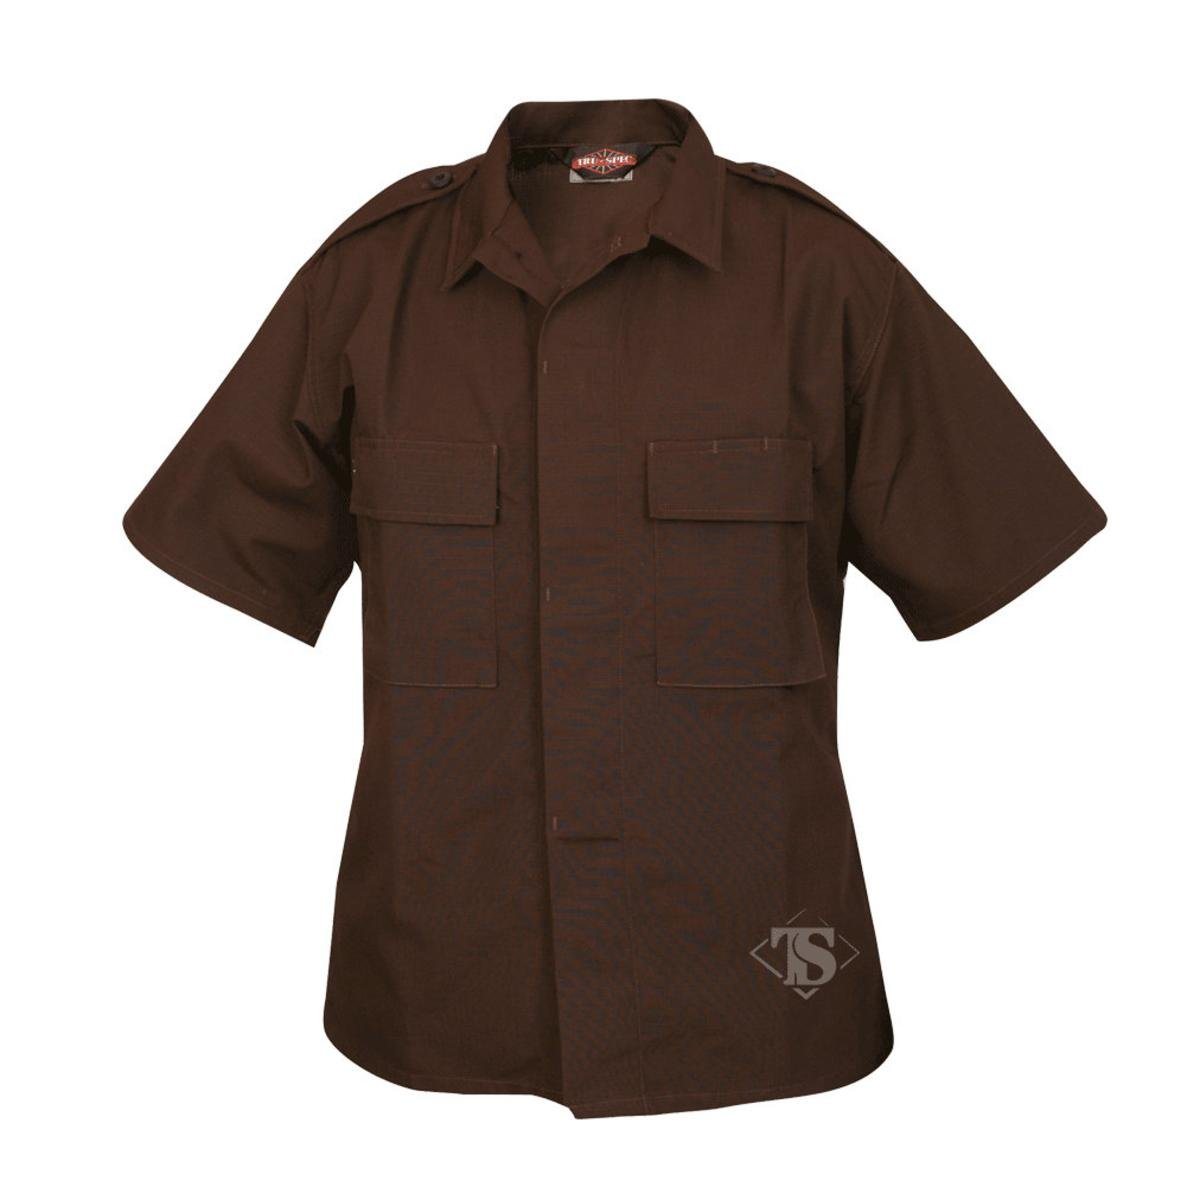 TRU-SPEC Men's Lightweight Short Sleeve Tactical Shirt Atlanco TS1000-1006